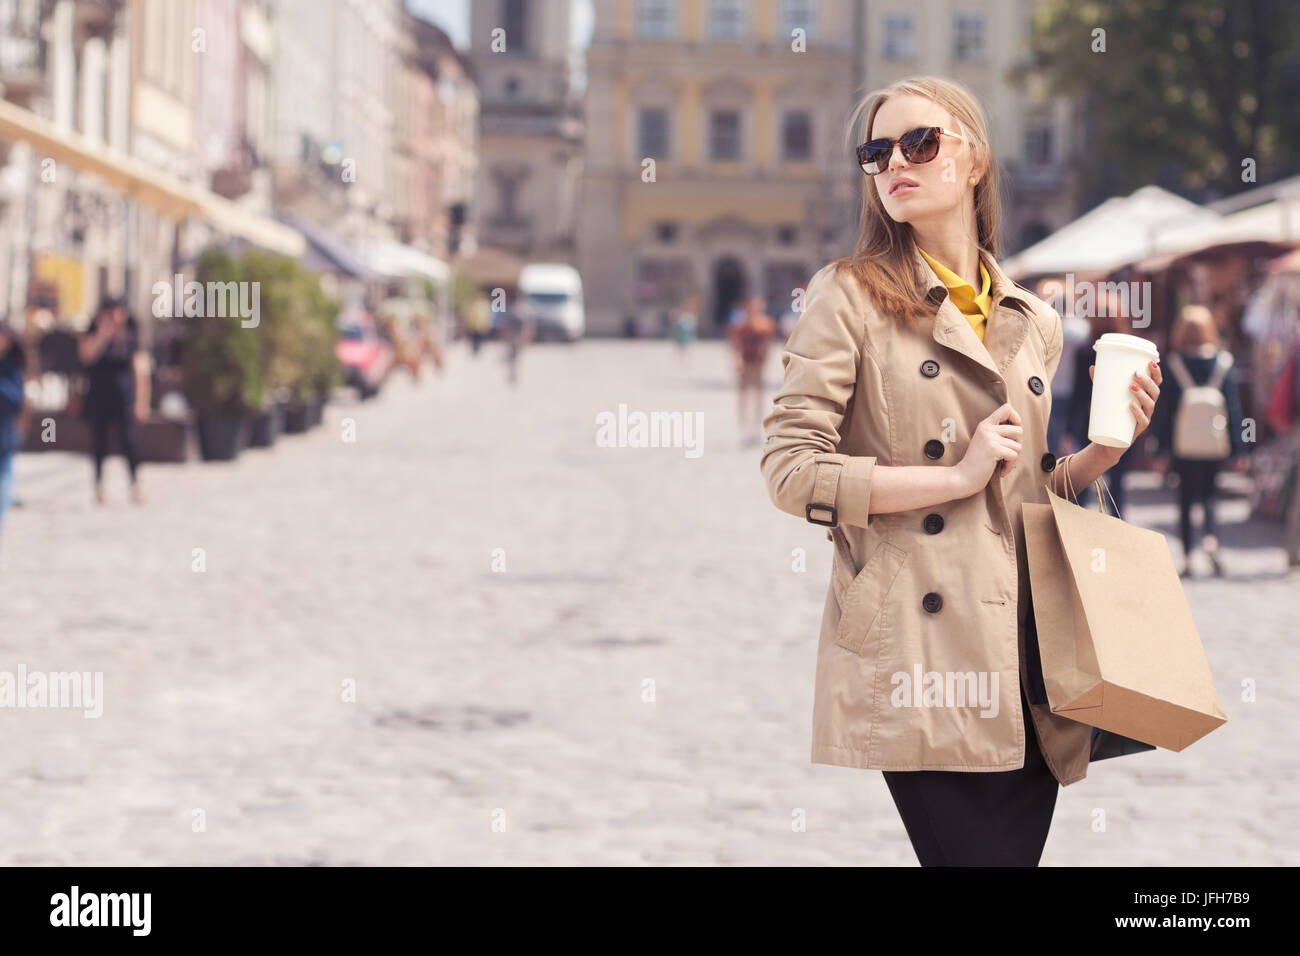 Shopping therapy. - Stock Image